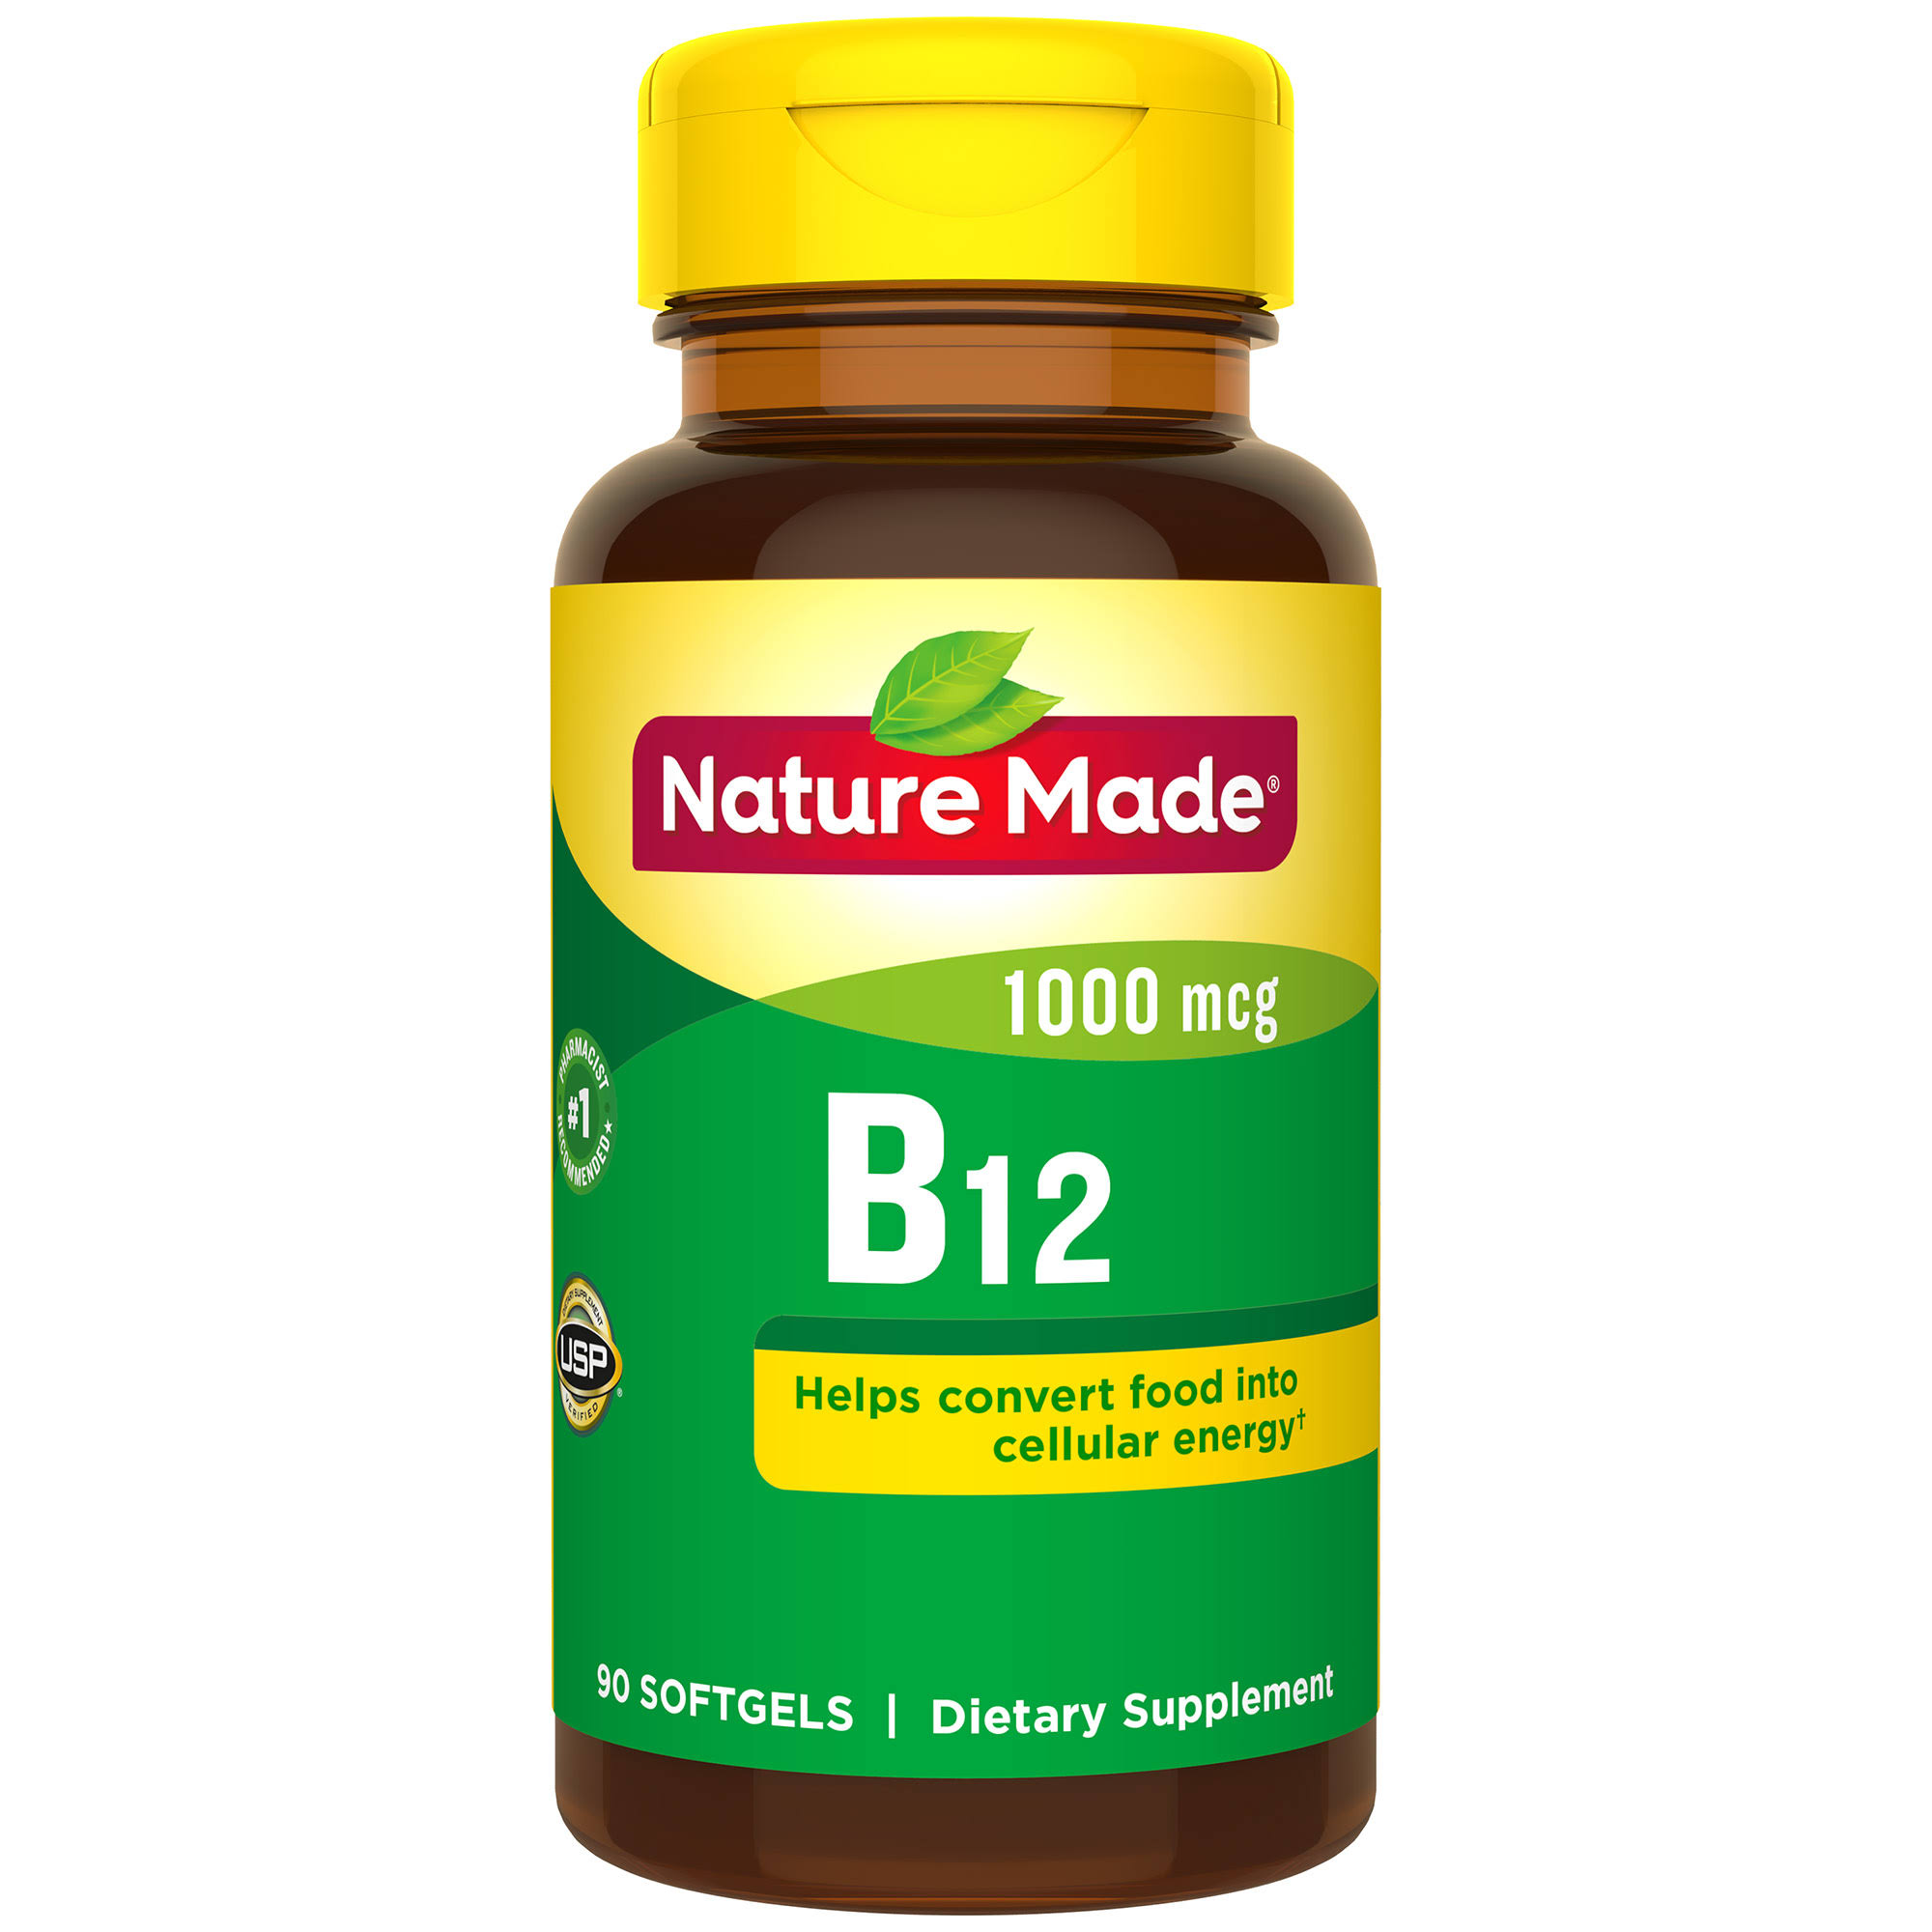 Nature Made Vitamin B12 Dietary Supplement - 90ct